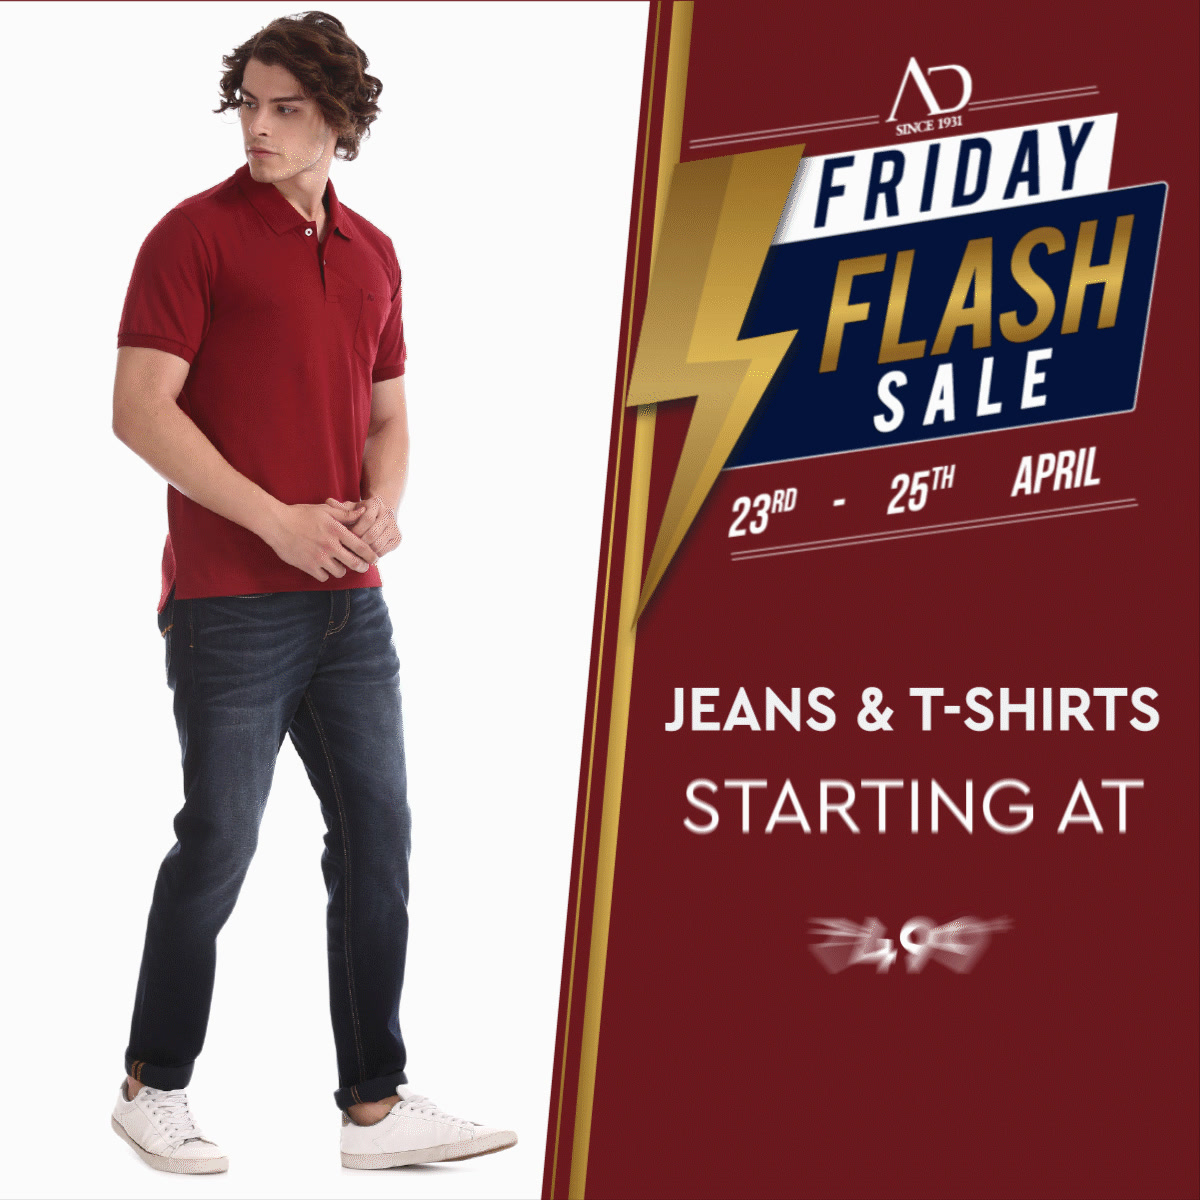 Get all set to wear your swag with Jeans & T-Shirts starting at just Rs.499*, only on 23rd, 24th & 25th April!  Shop now at arvind.nnnow.com  #ADbyArvind #ADfashion #FashioningPossibilities #FridayFlashSale #Menswear  #StayStylish  #Jeans #Tshirts #OfferAlert #FridayFashion #YayFriday